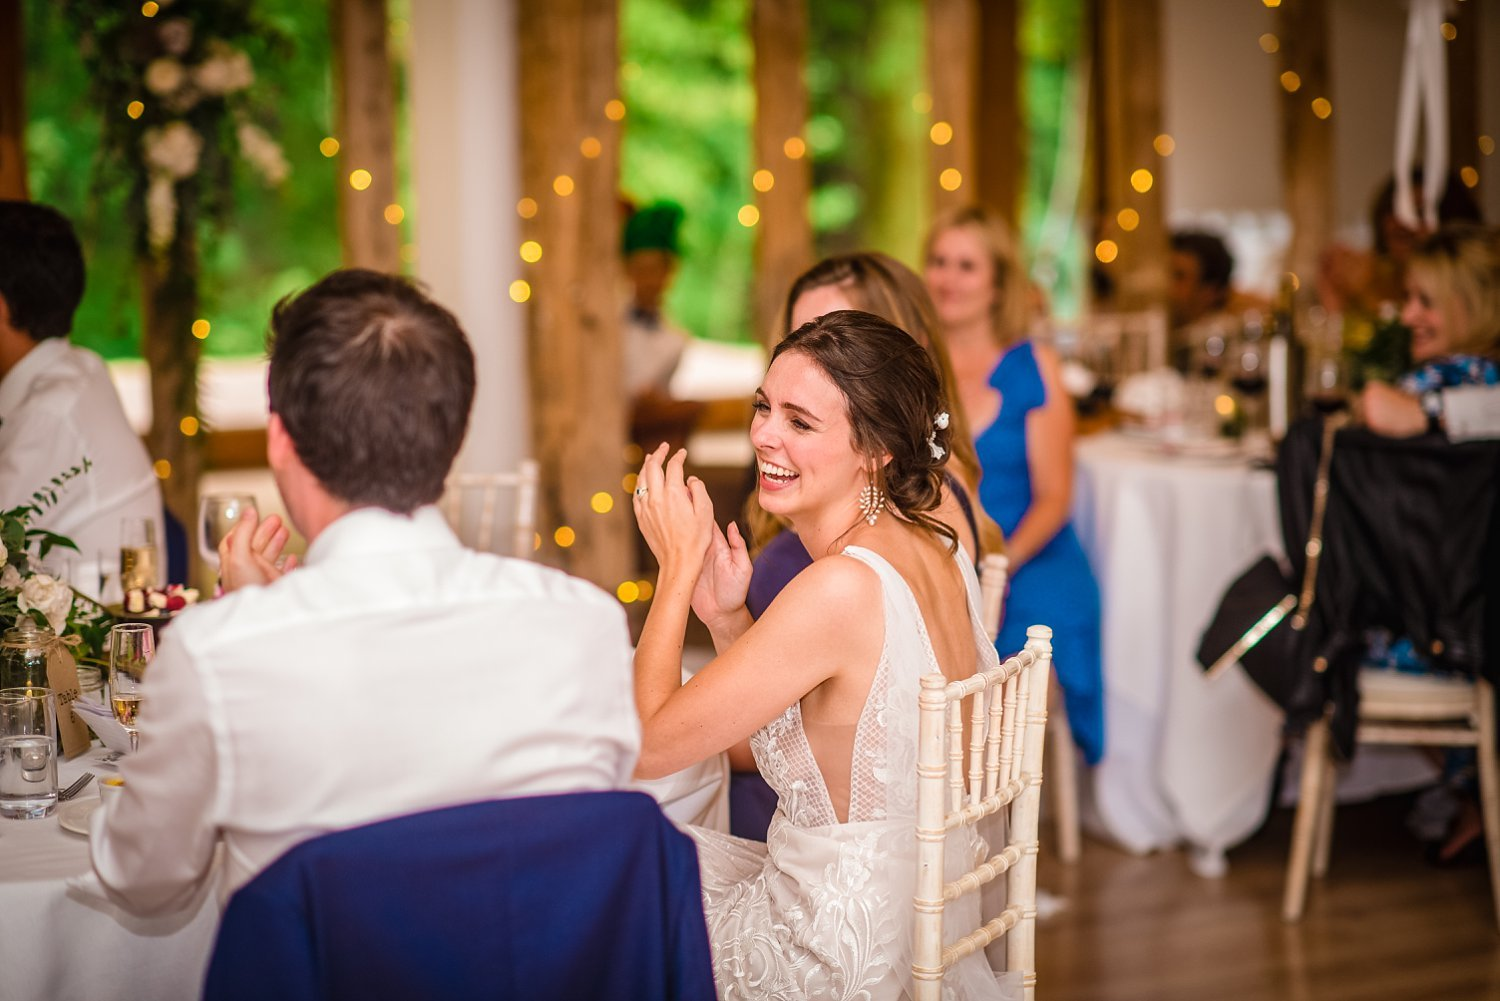 Colville Hall Weding Photographer-bride is laughinhg sat down at the table